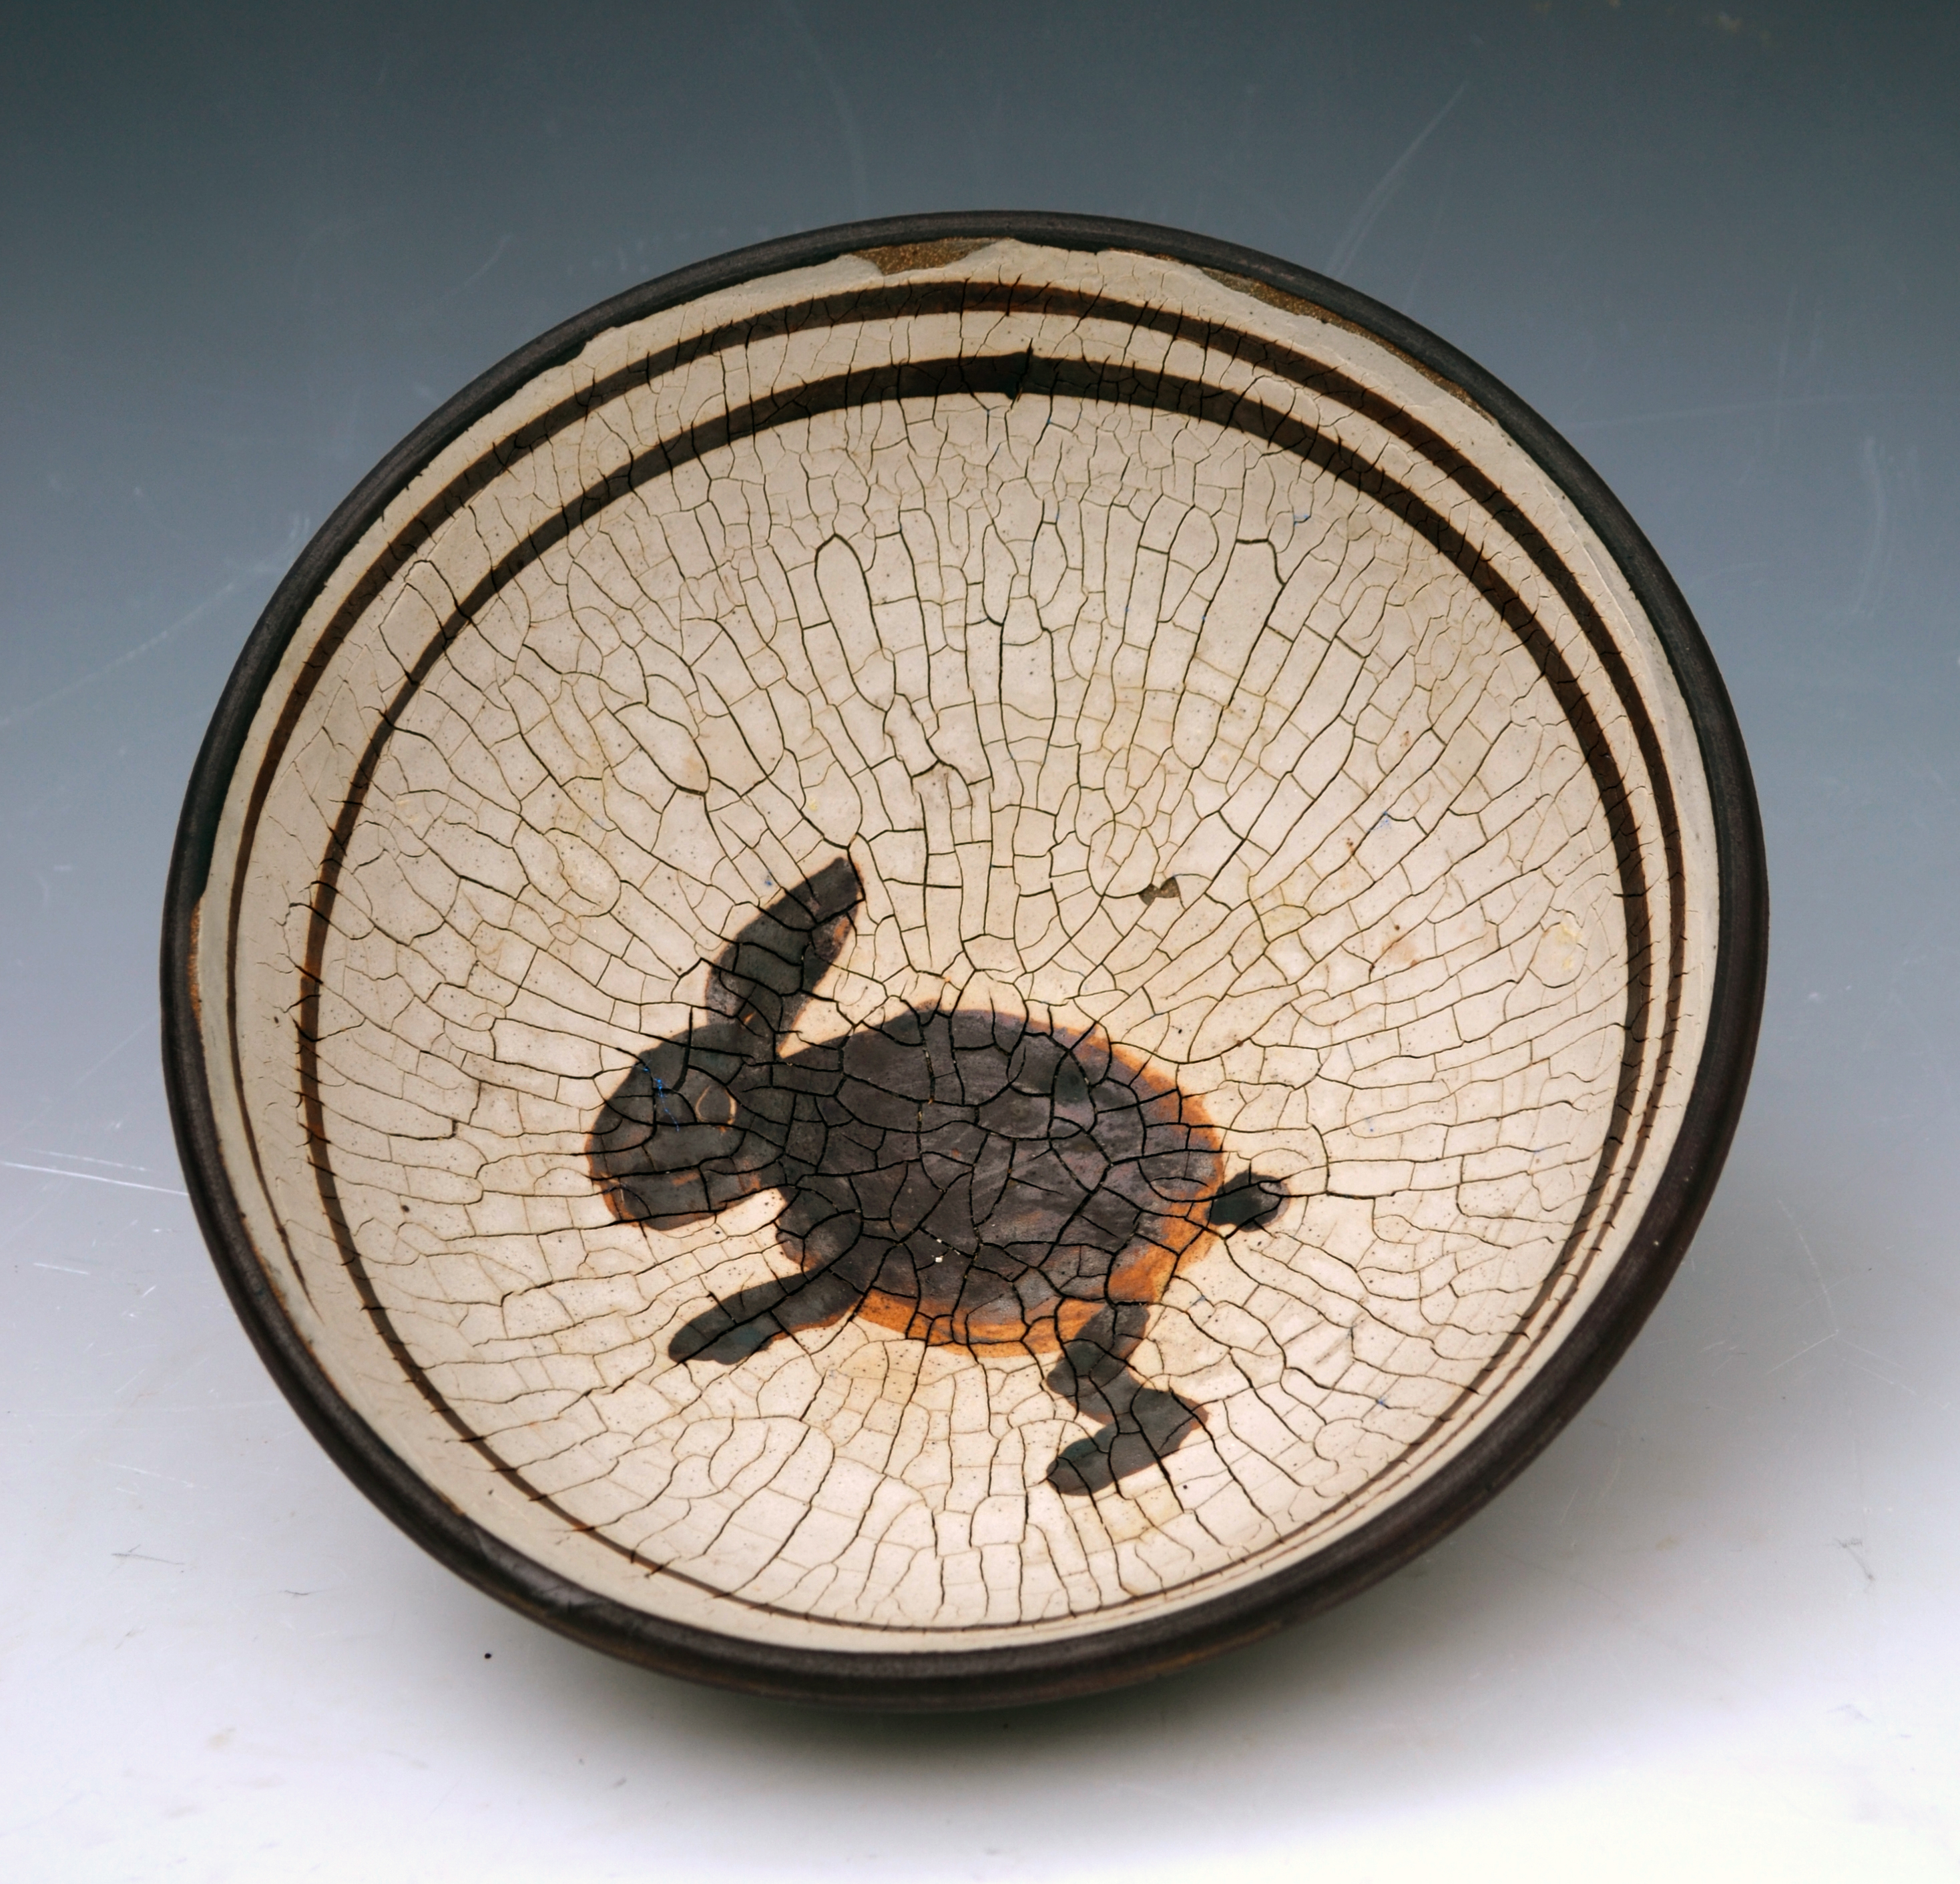 anasazi inspired bowl with rabbit